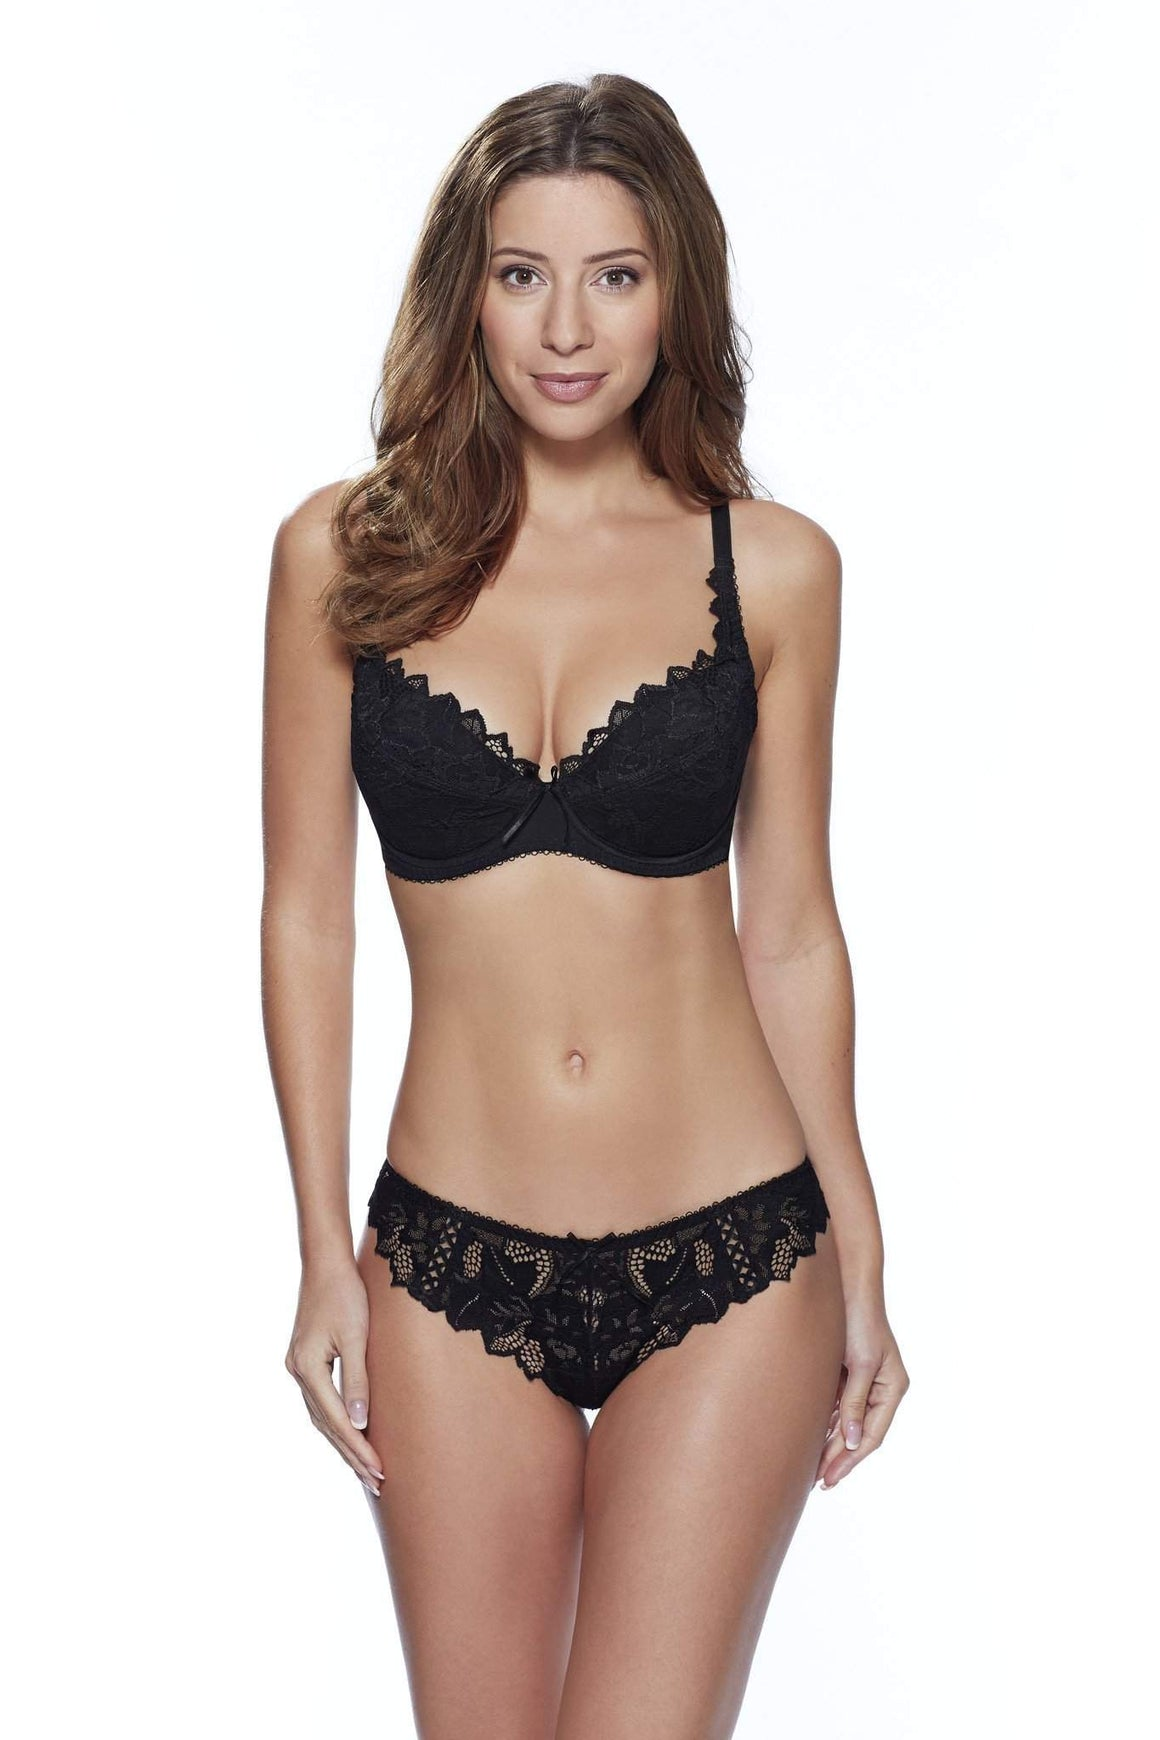 Fiore Plunge Bra in Black by Lepel - Charnos / Lepel - Katys Boutique Lingerie USA